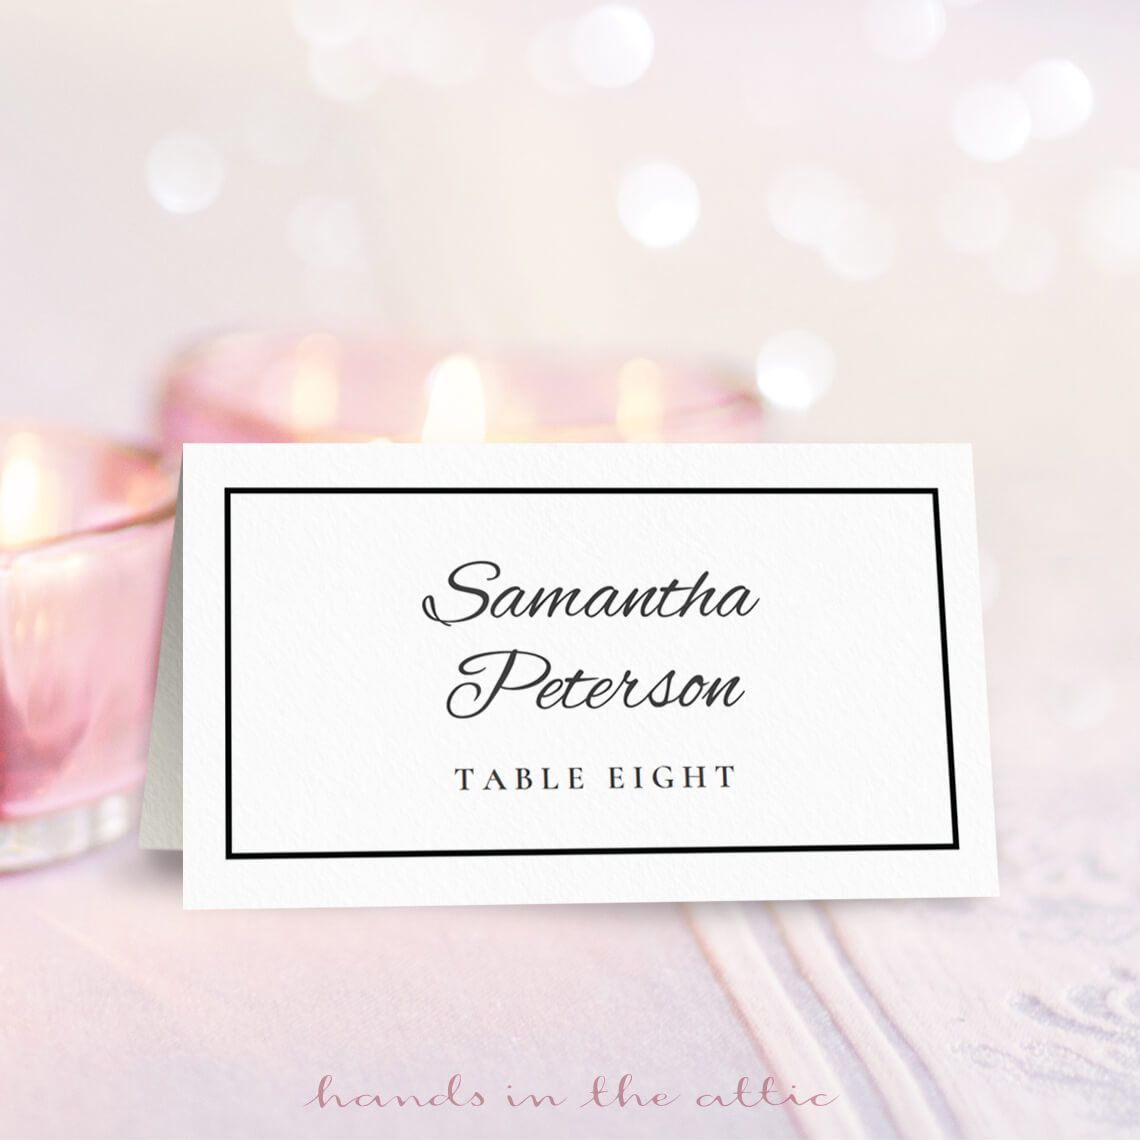 009 Rare Free Printable Place Card Template Image  Blank Wedding Christma TableFull